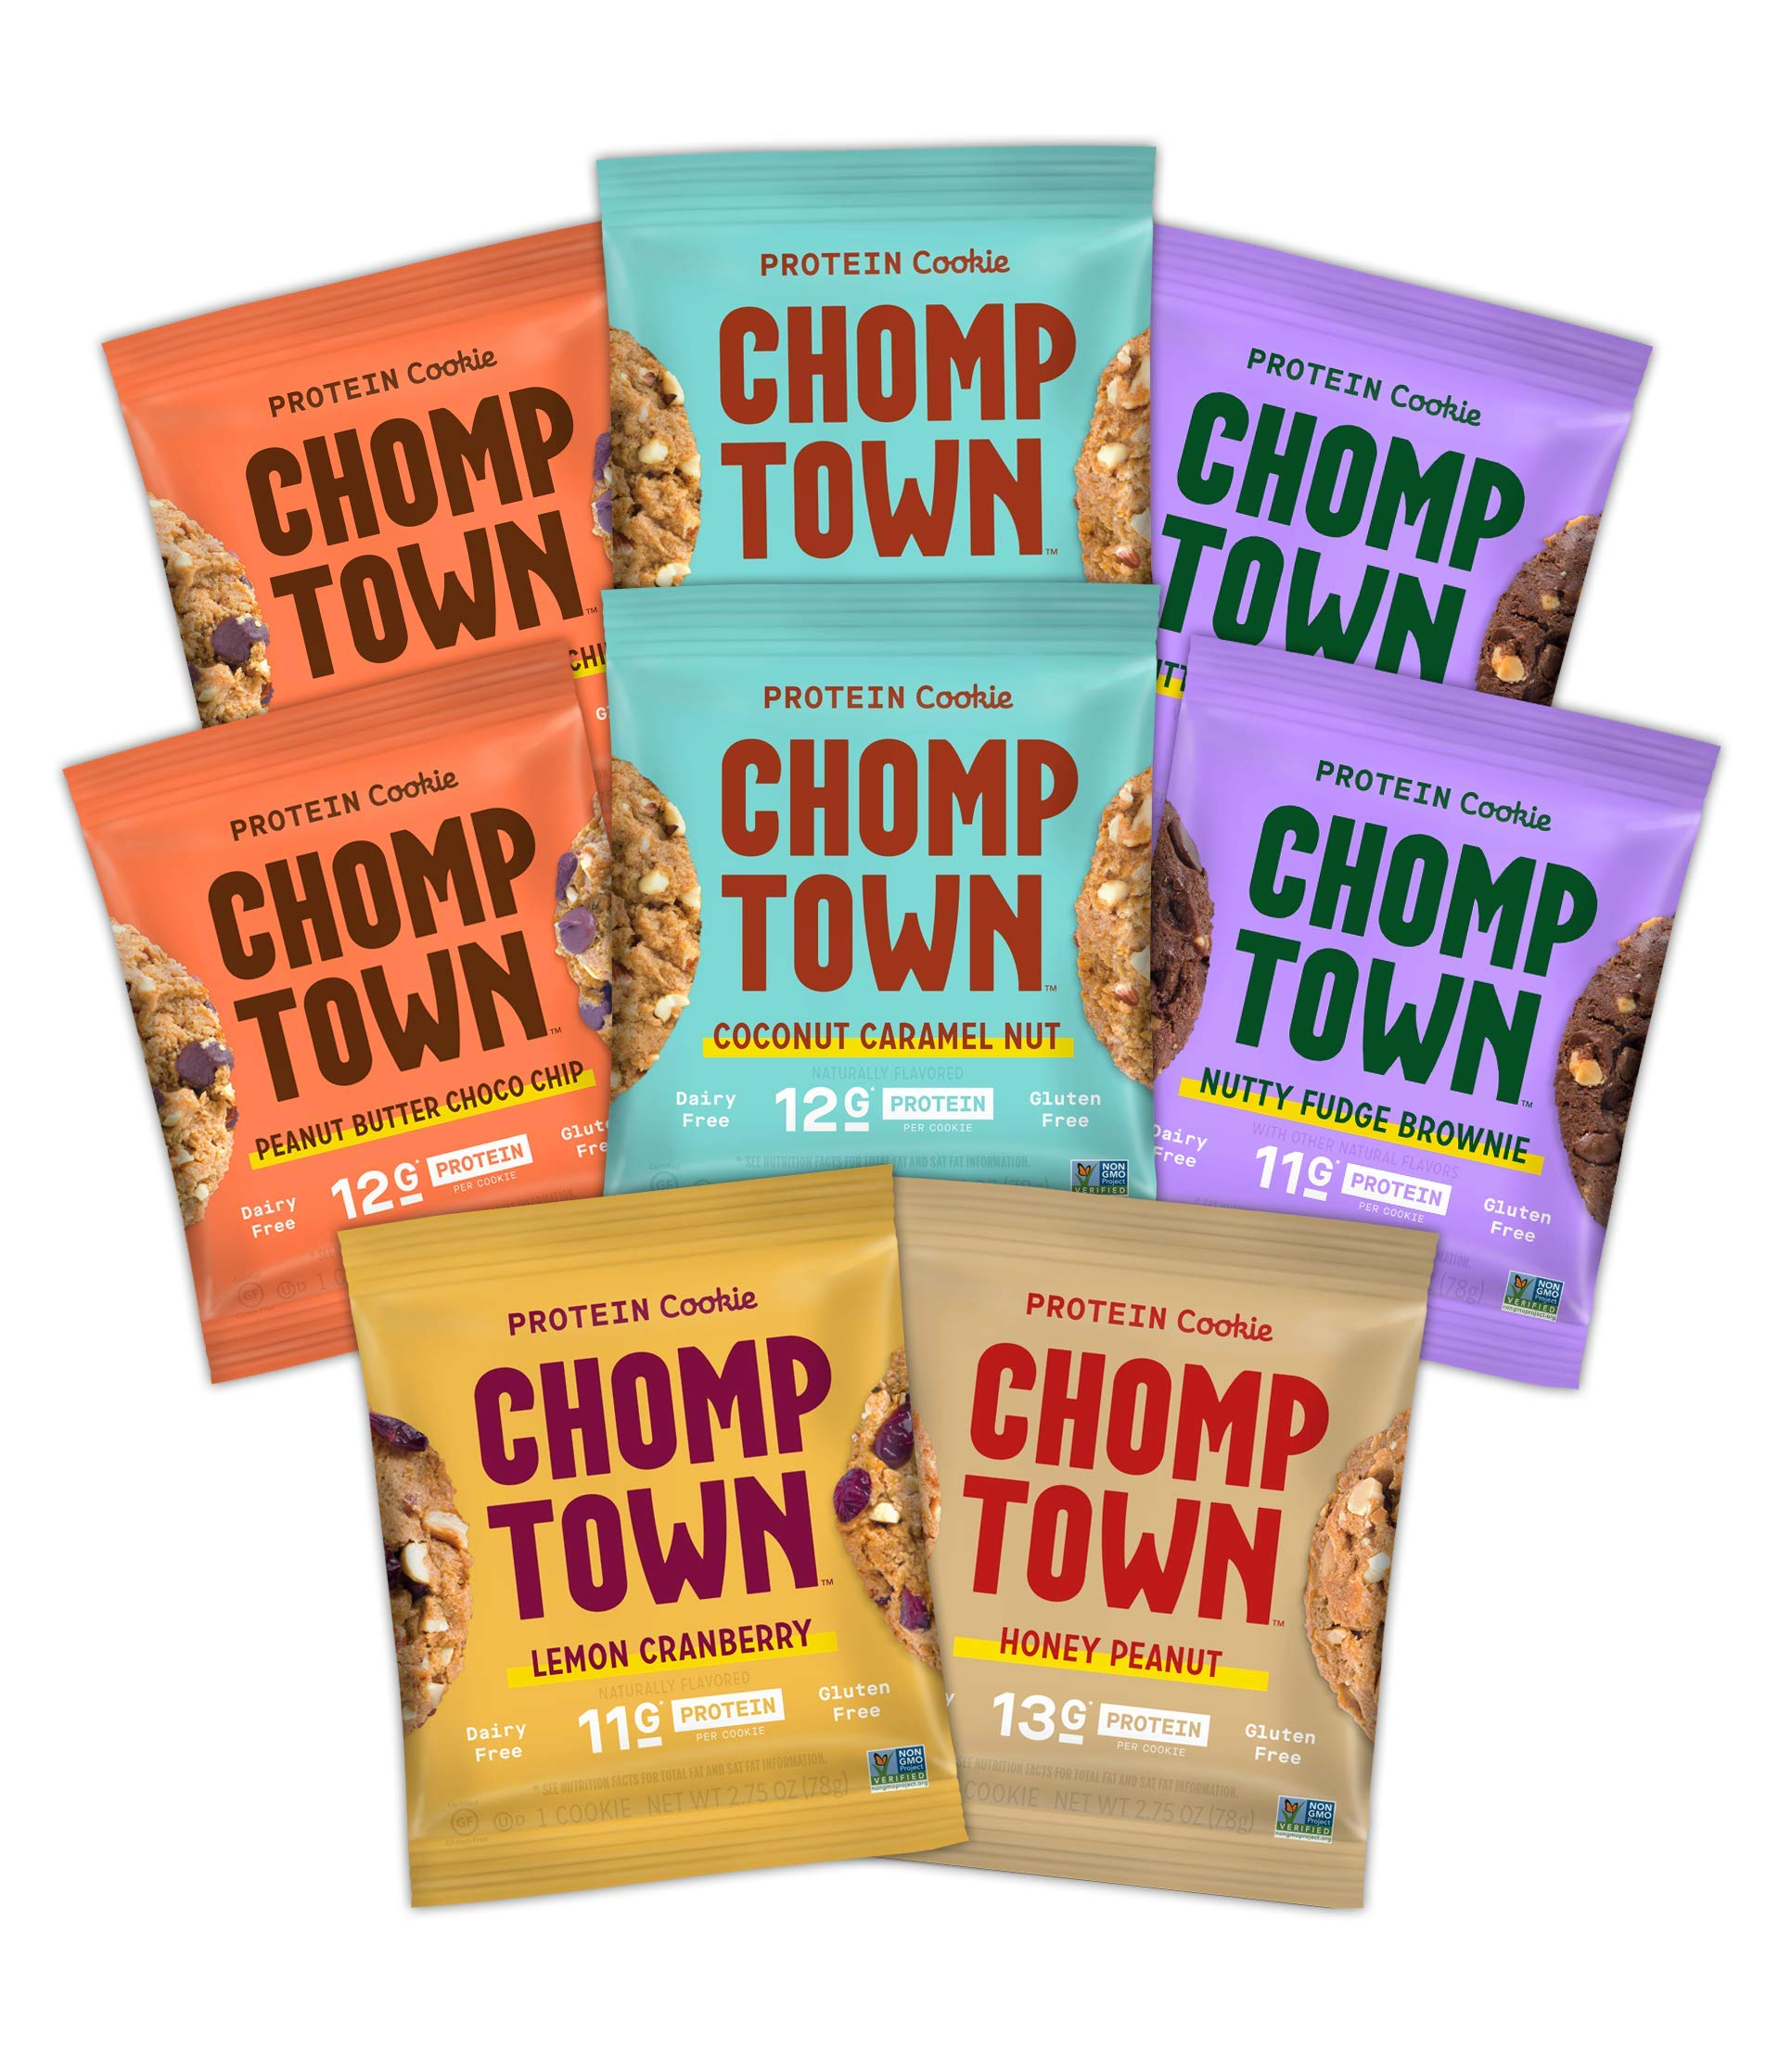 Chomptown | Variety Pack | High-Protein Cookie | Gluten-Free | Dairy-Free | Non-GMO | Fair Trade | 2.75 oz (Pack of 8) by Chomptown (Image #1)